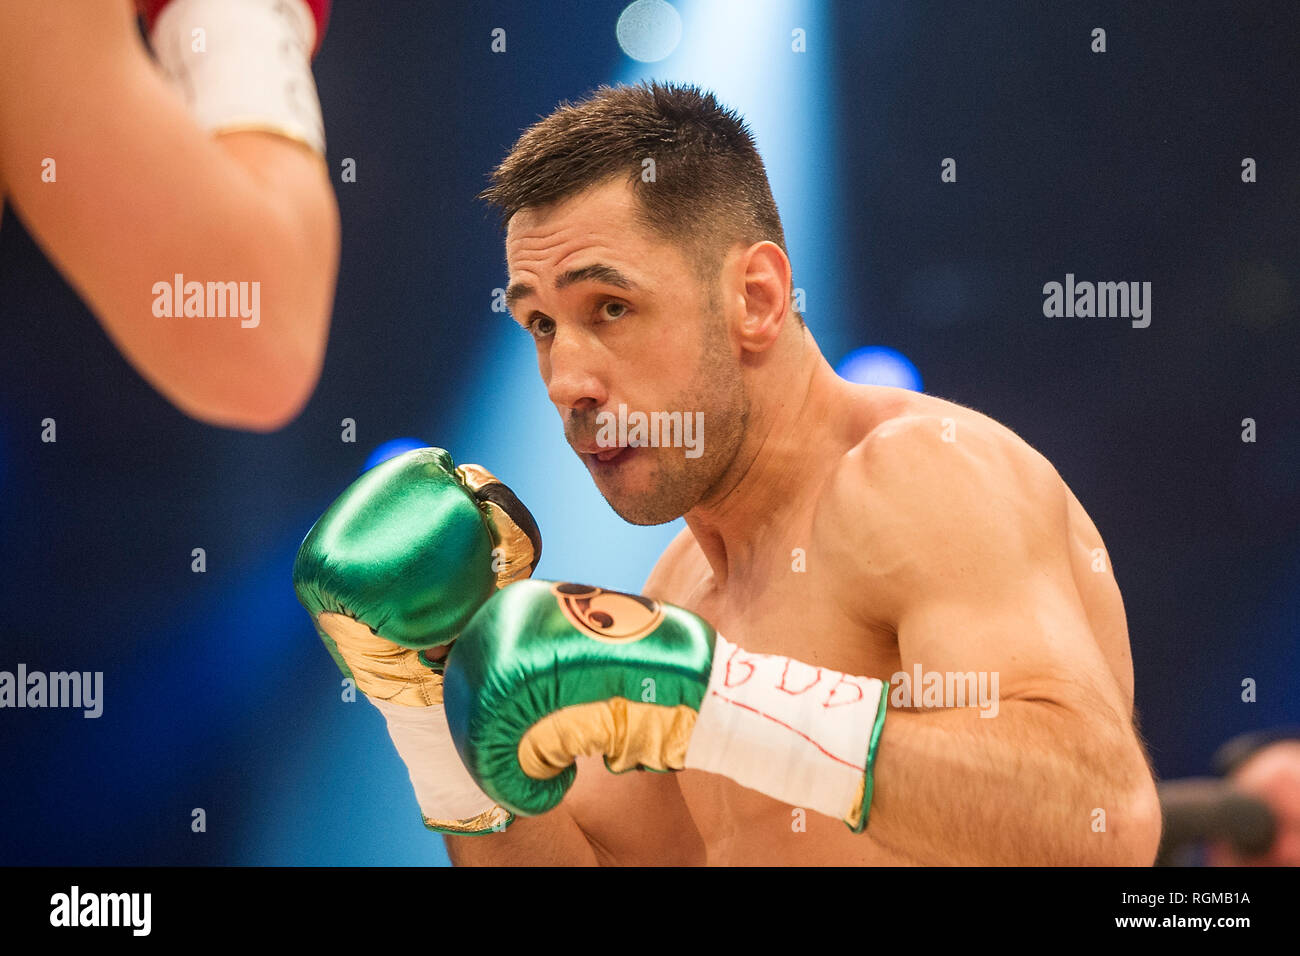 Berhausen Fistcourt Stock Photos Fistcourt Stock Images Alamy